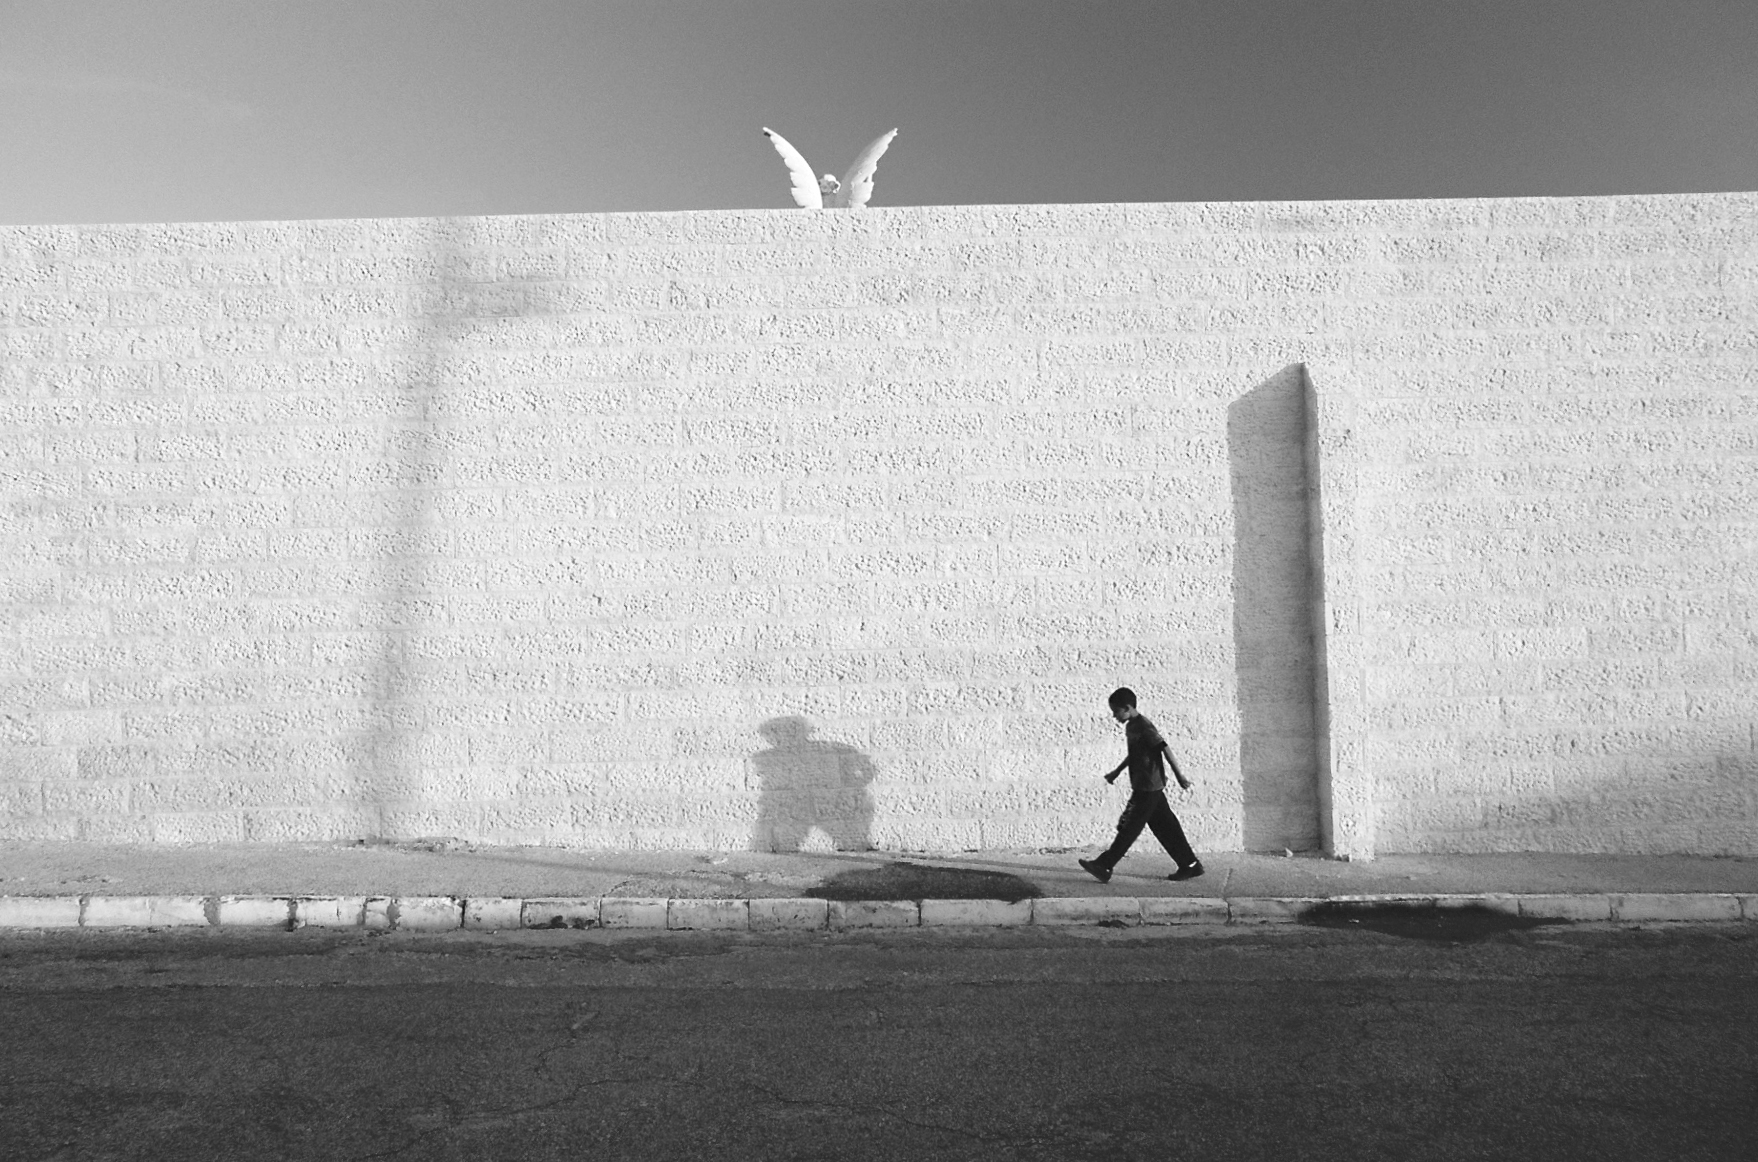 Wings, Jaffa 2012